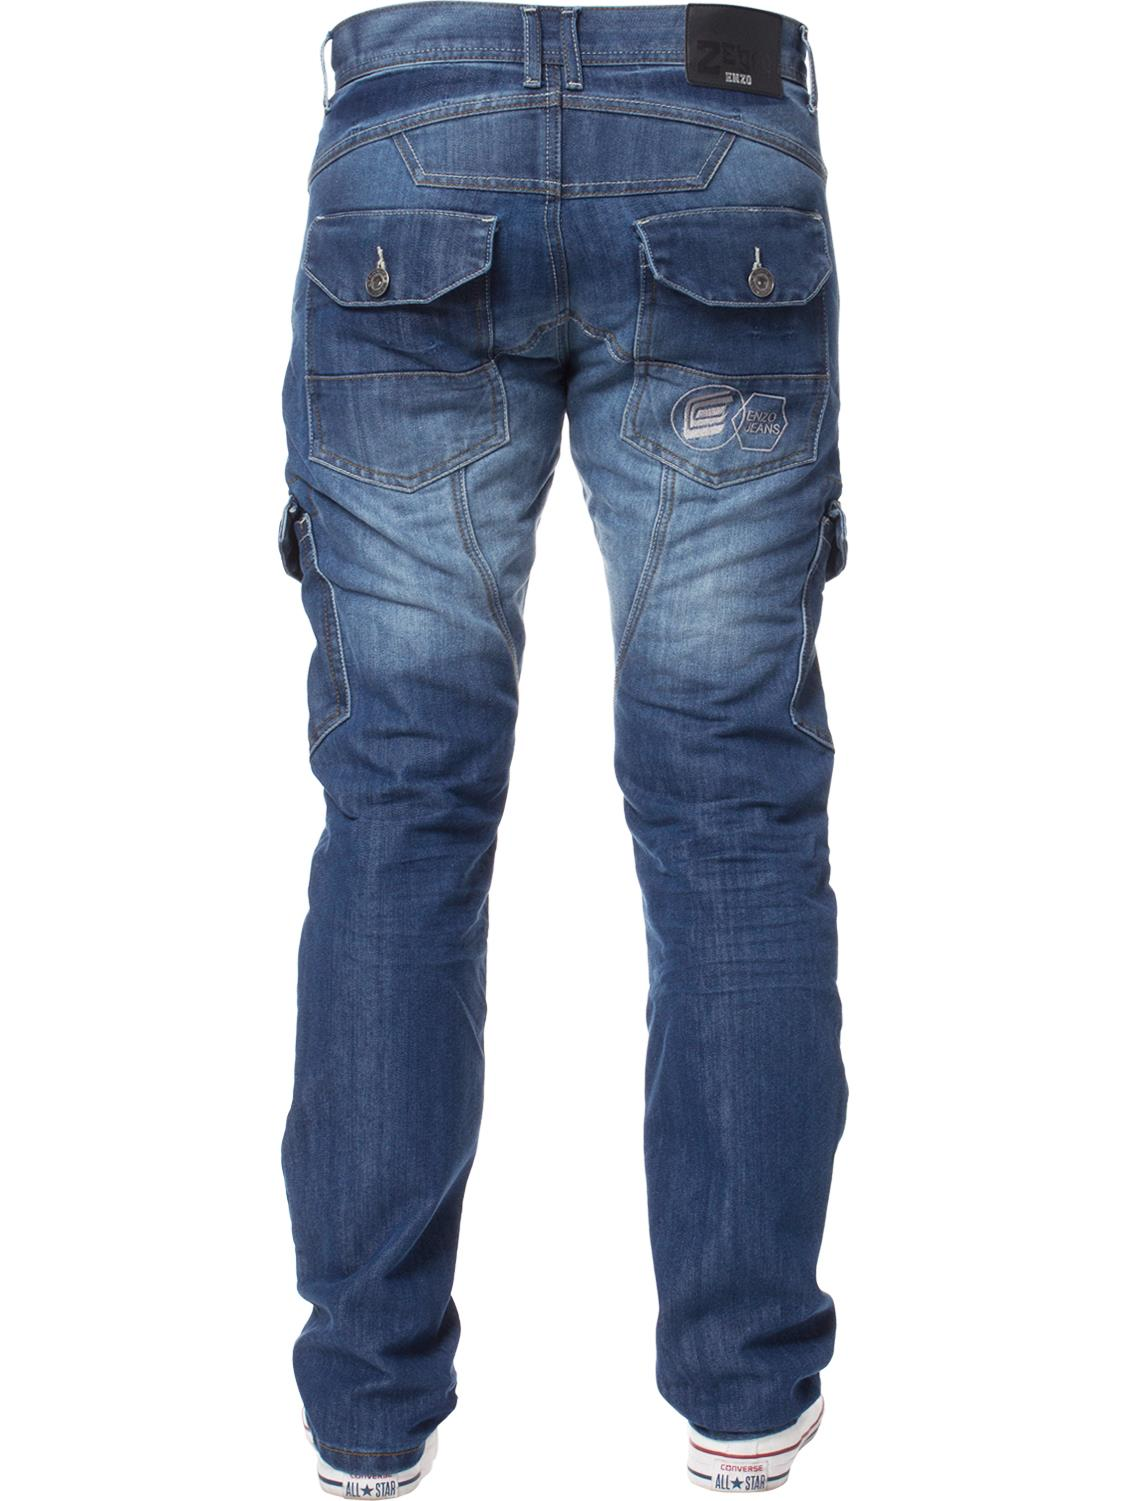 Enzo-Mens-Jeans-Big-Tall-Leg-King-Size-Denim-Pants-Chino-Trousers-Waist-44-034-60-034 miniature 86